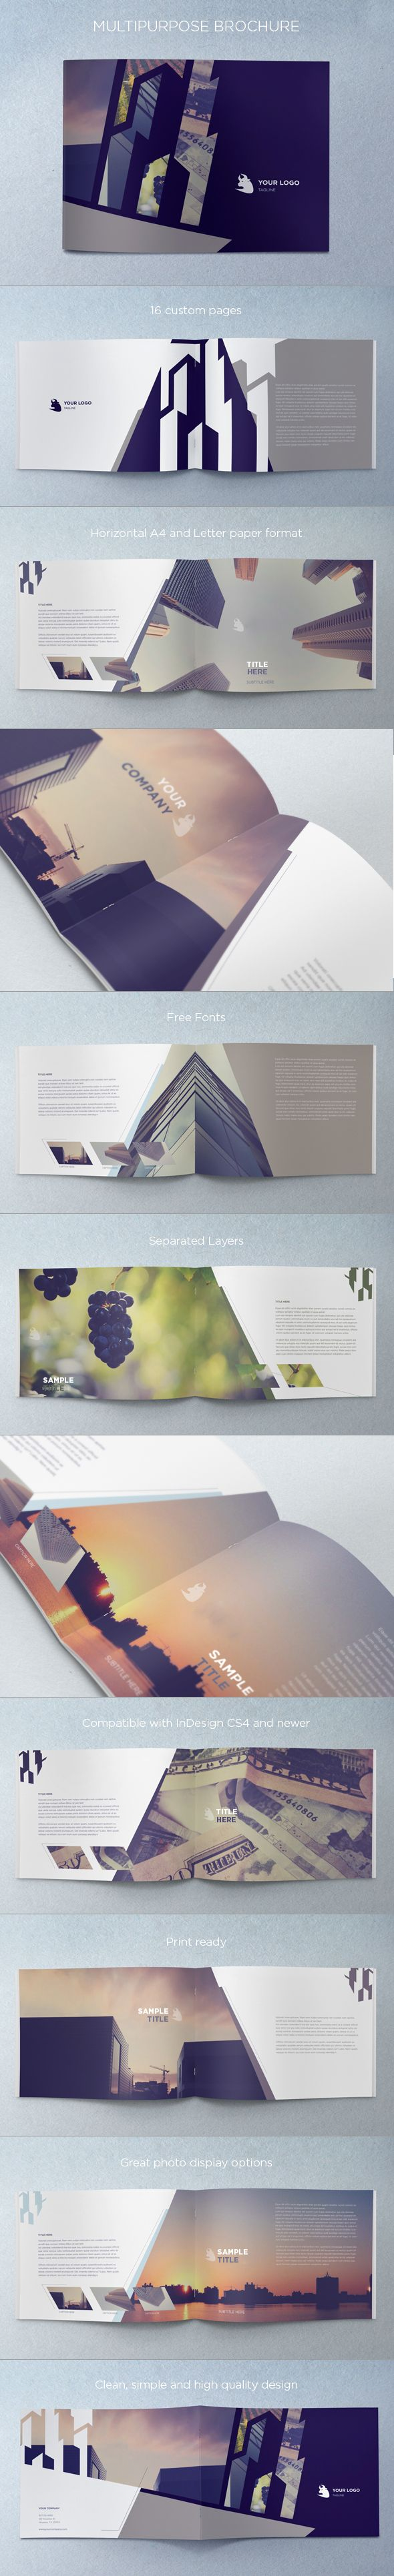 Multipurpose Brochure. Download here: http://graphicriver.net/item/multipurpose-brochure/4599702?ref=abradesign #design #brochure